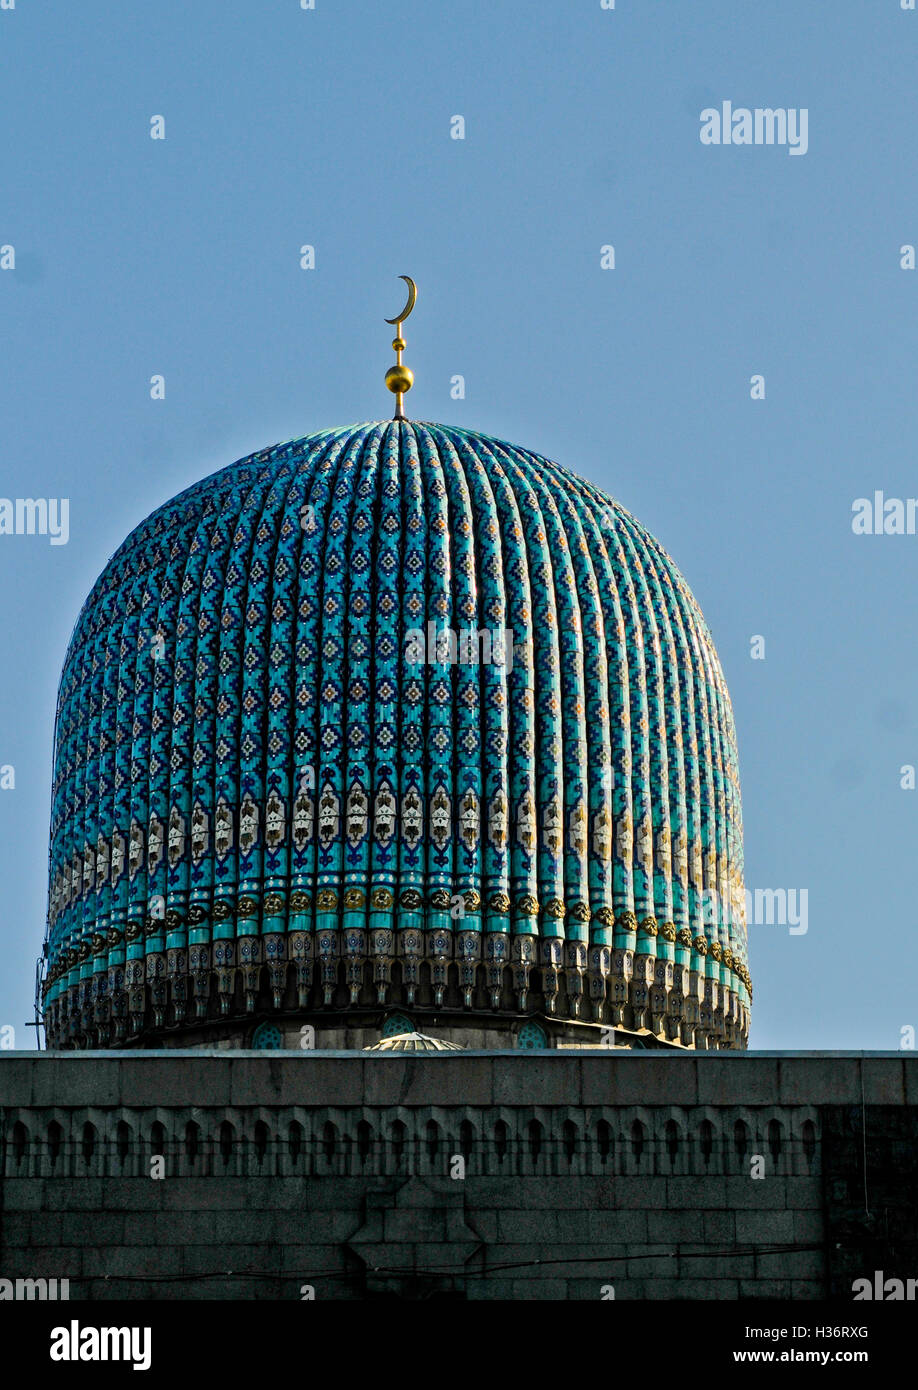 Saint Petersburg Mosque dome, Russia - Stock Image